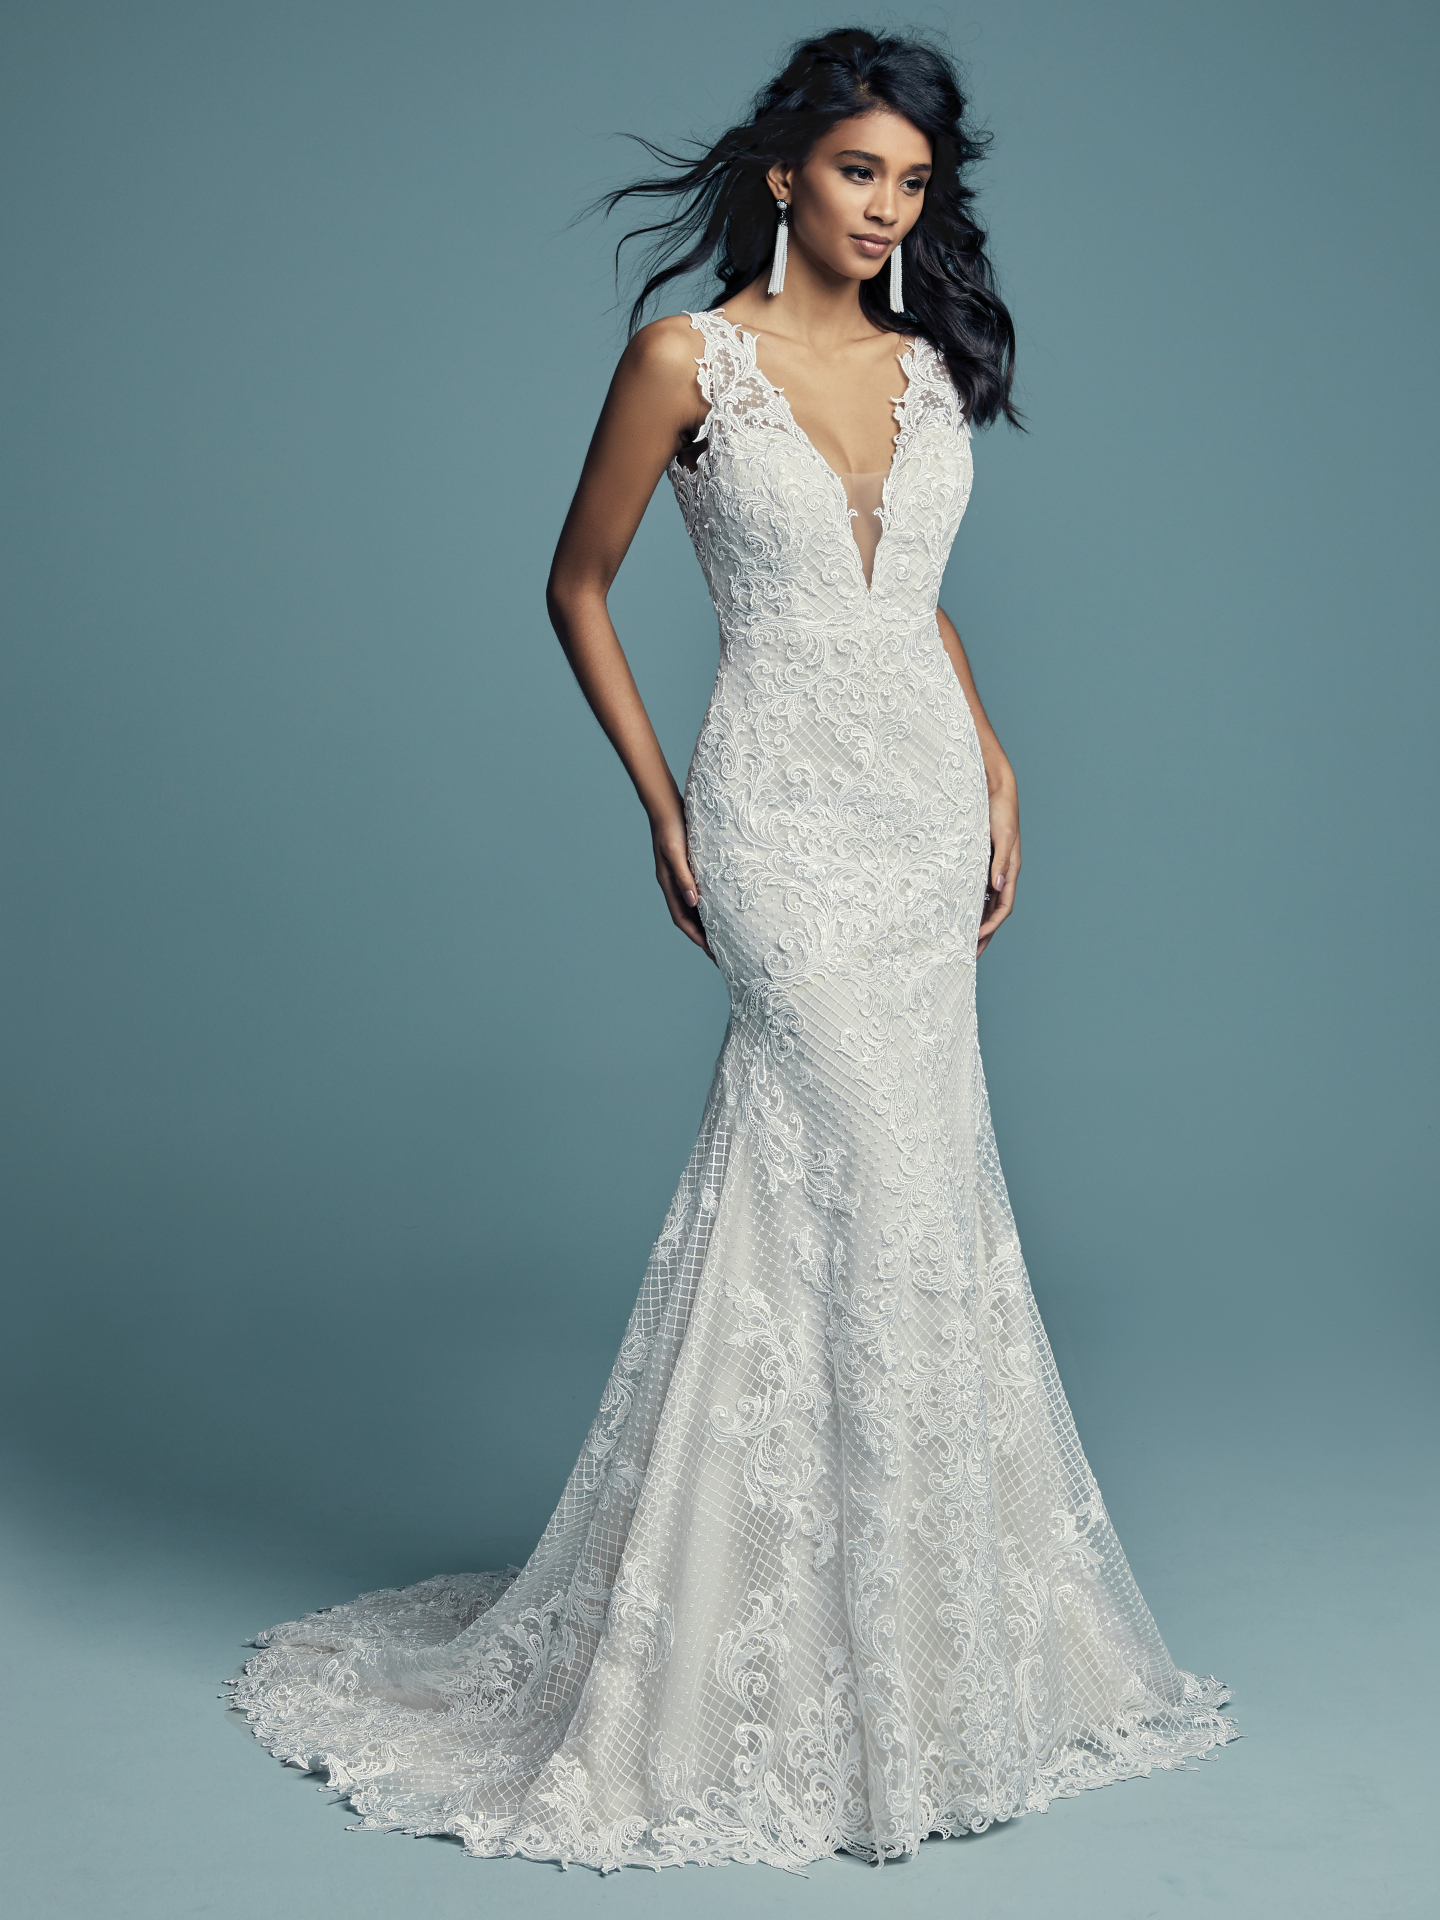 bc8fc8cea8e Wedding Dress For And Hourglass Shape. Finding the Perfect Dress for Your  Body Type ...